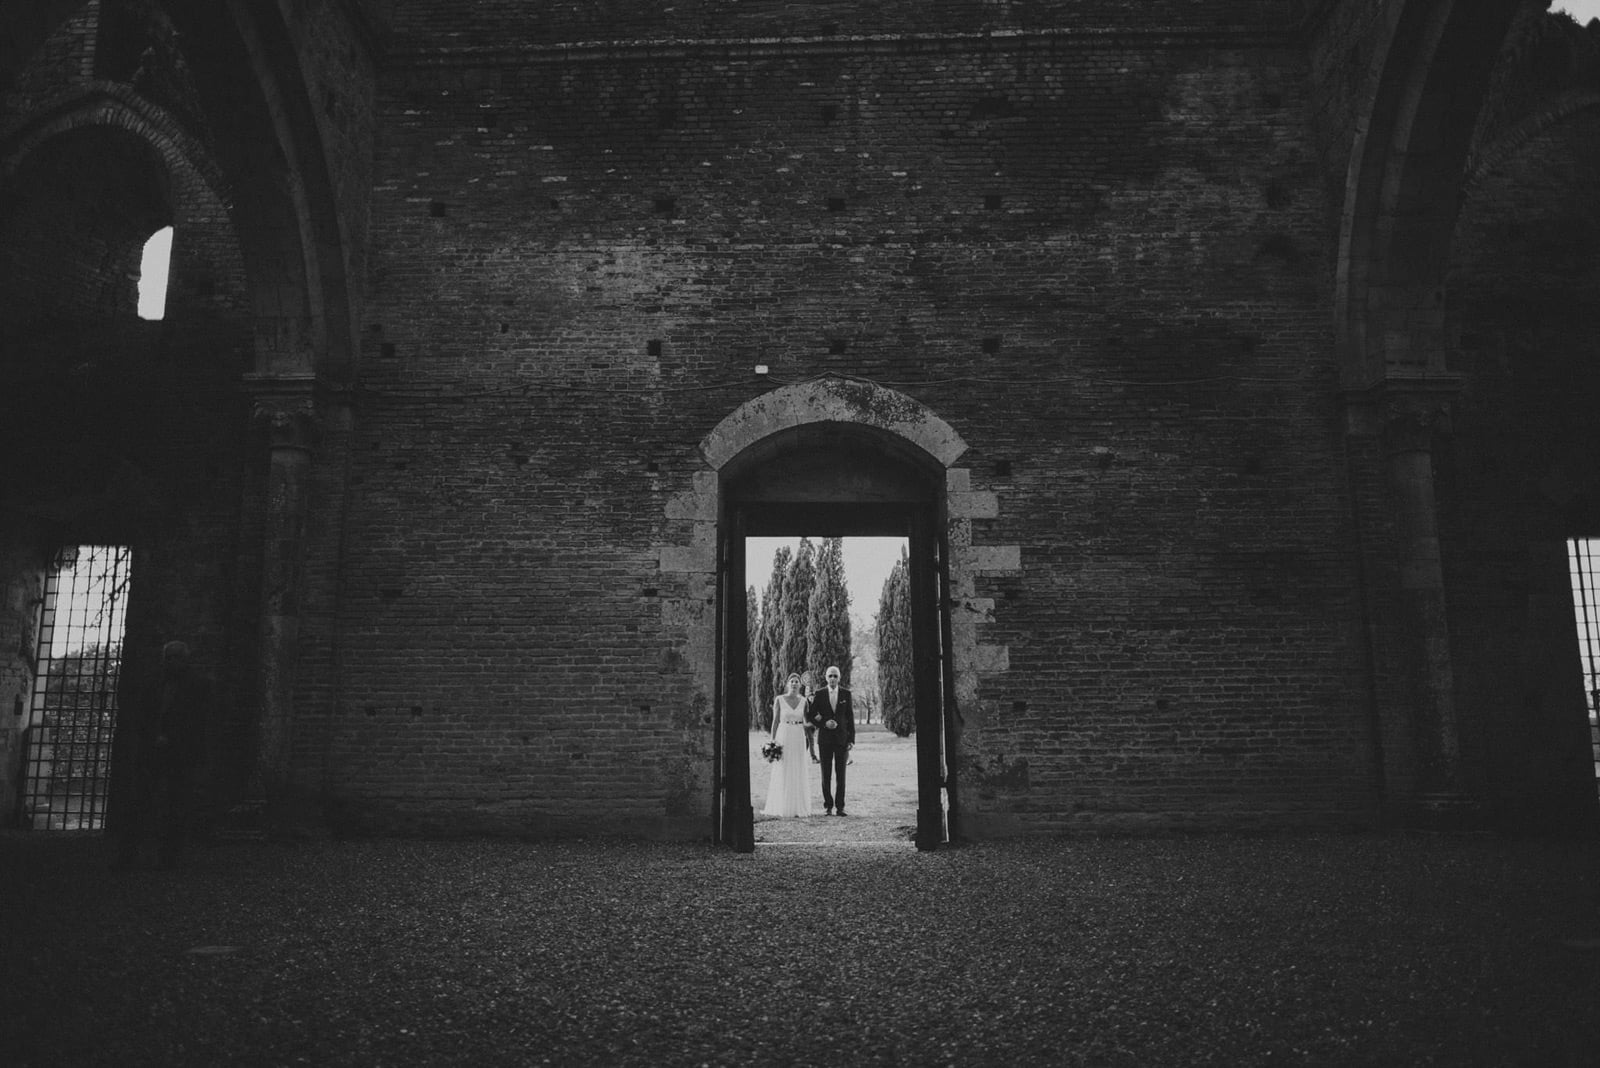 026-wedding-tuscany-san-galgano-siena-photographer